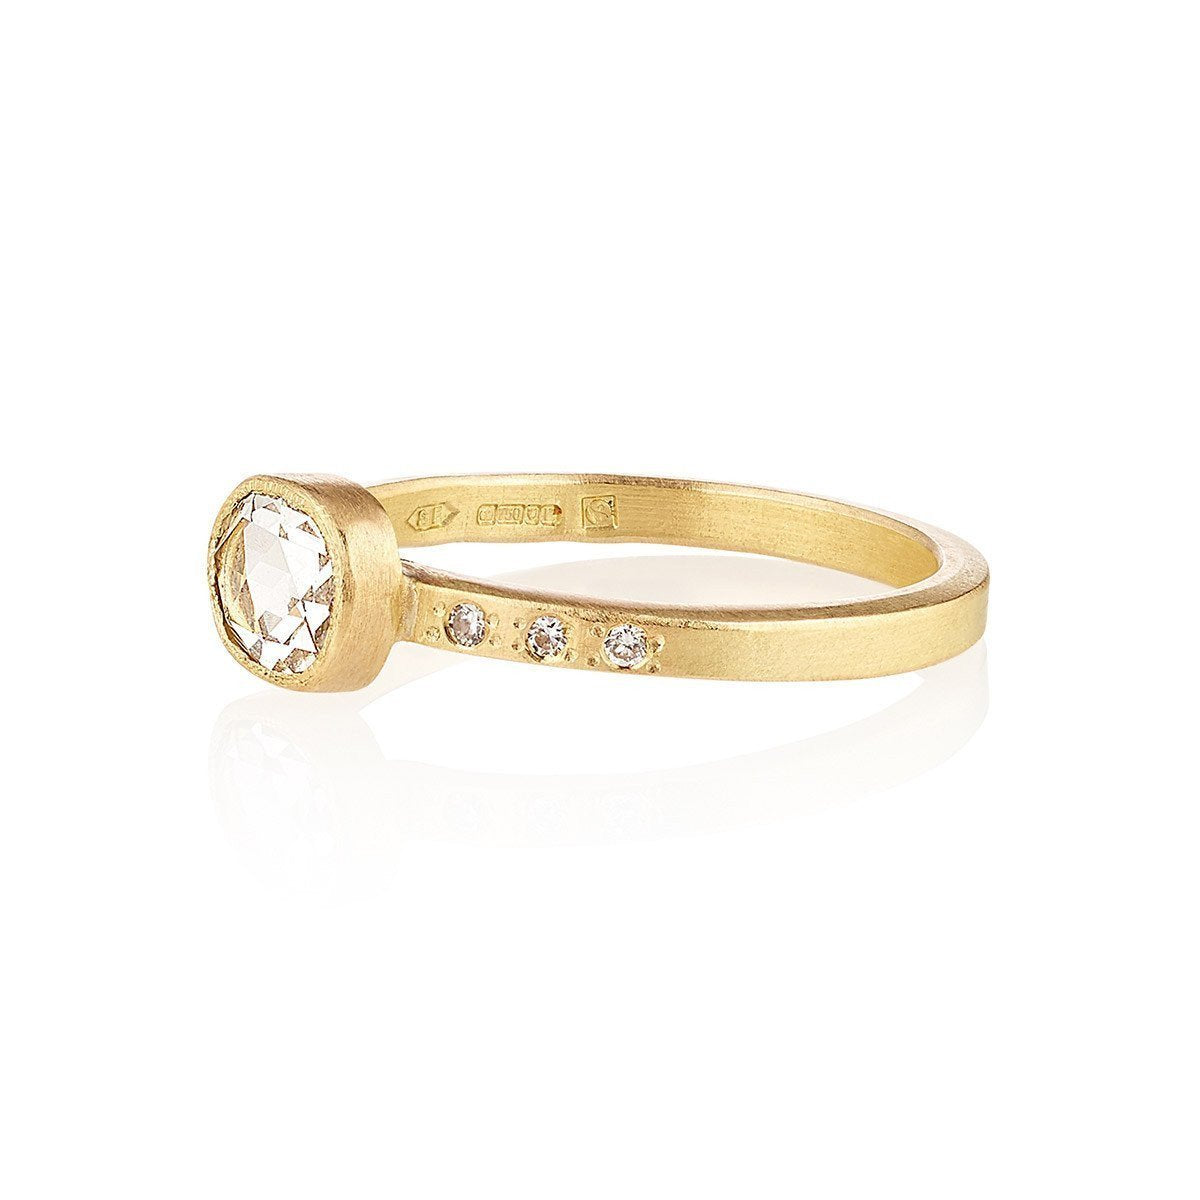 Shakti Ellenwood 18kt Fairtrade Gold Iris Diamond Ring - UK L - US 5 1/2 - EU 51 3/4 IGby2A